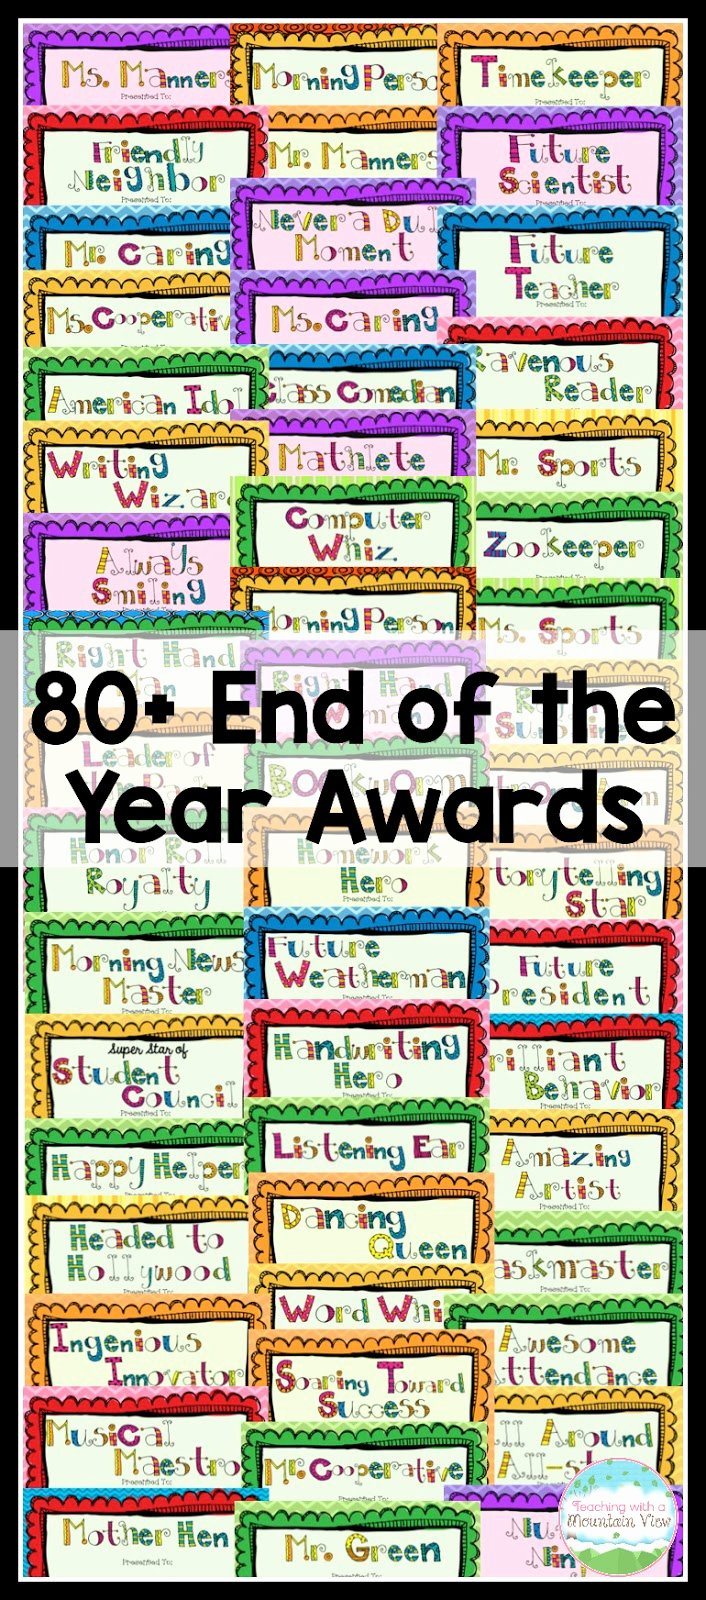 End Of the Year Awards for Students Funny Inspirational Teaching with A Mountain View End Of the Year Activities